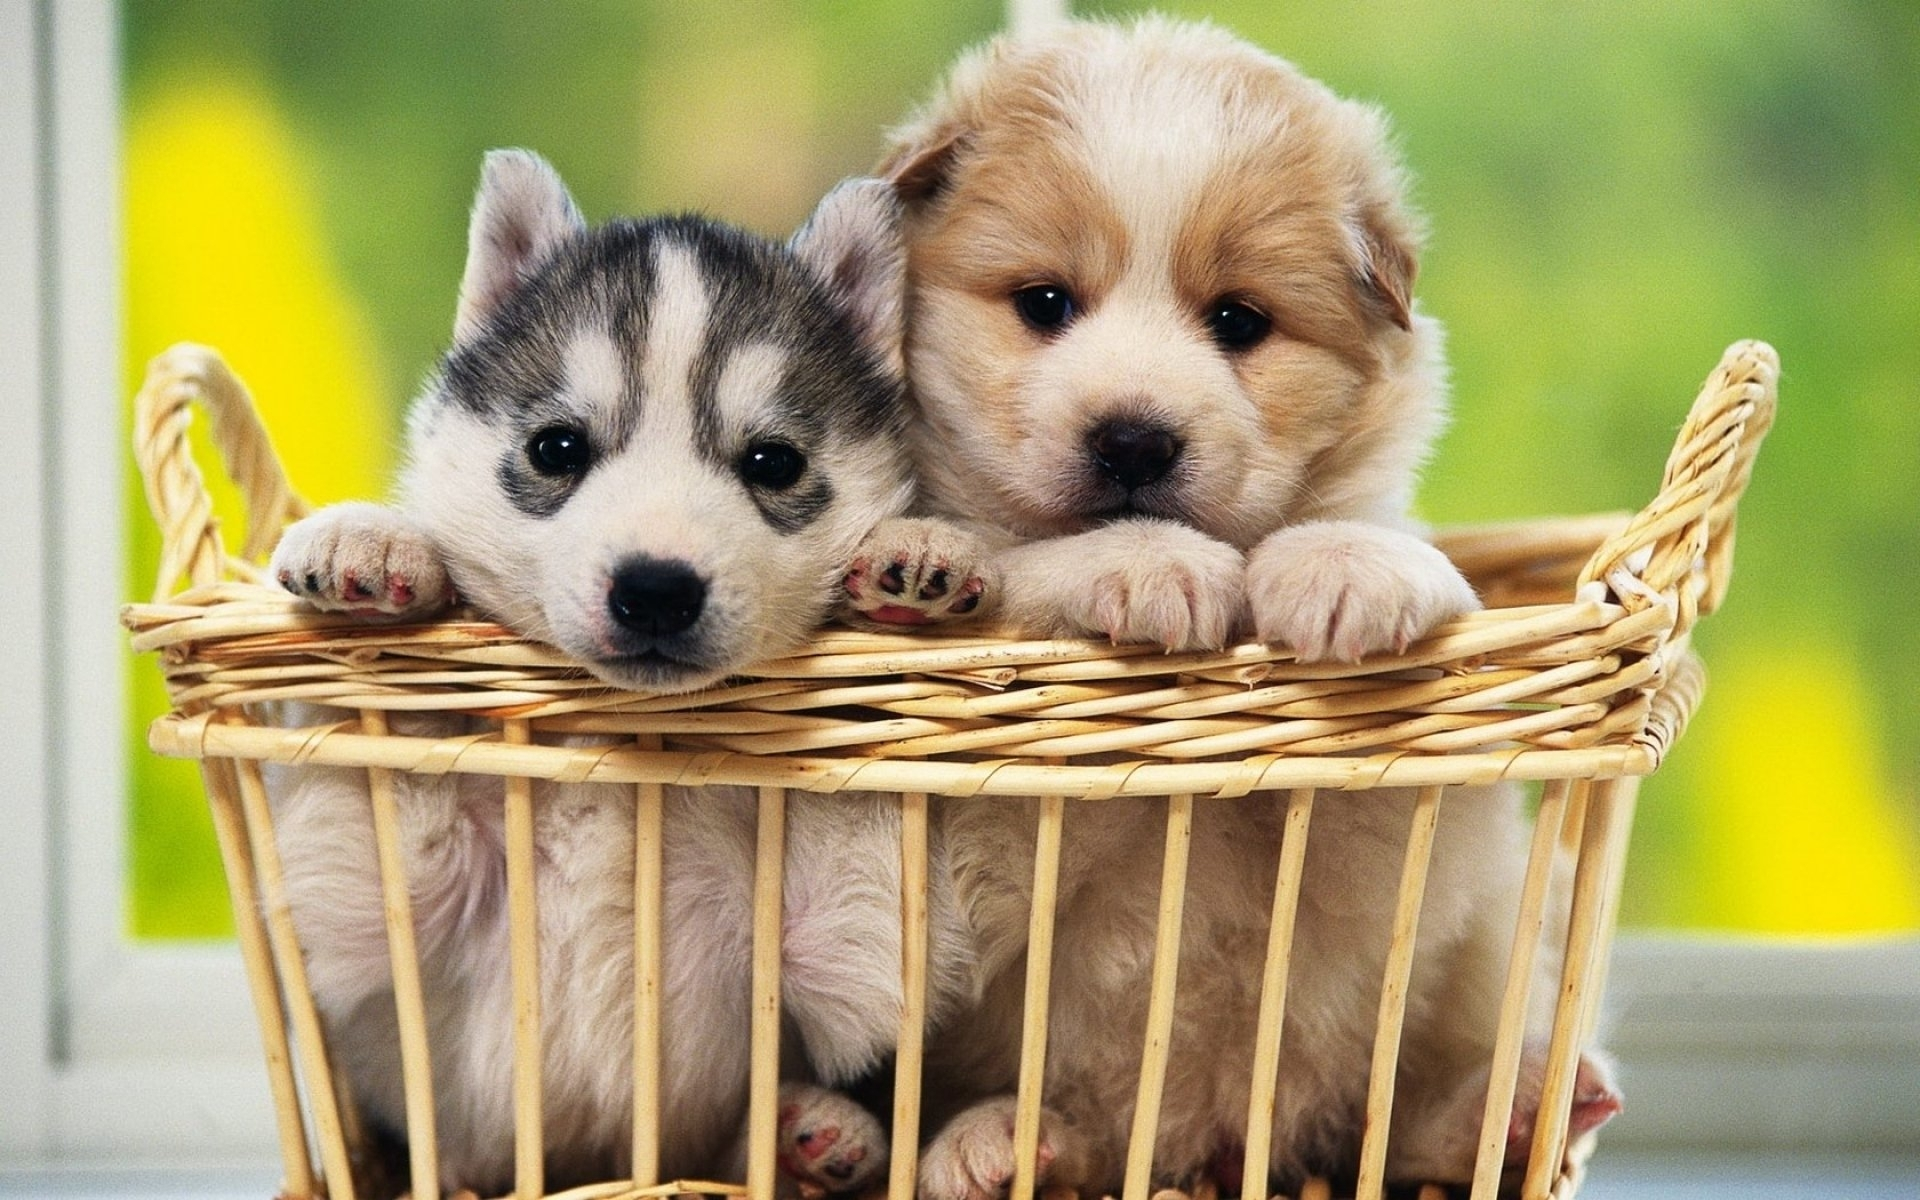 3742 dog hd wallpapers   background images - wallpaper abyss